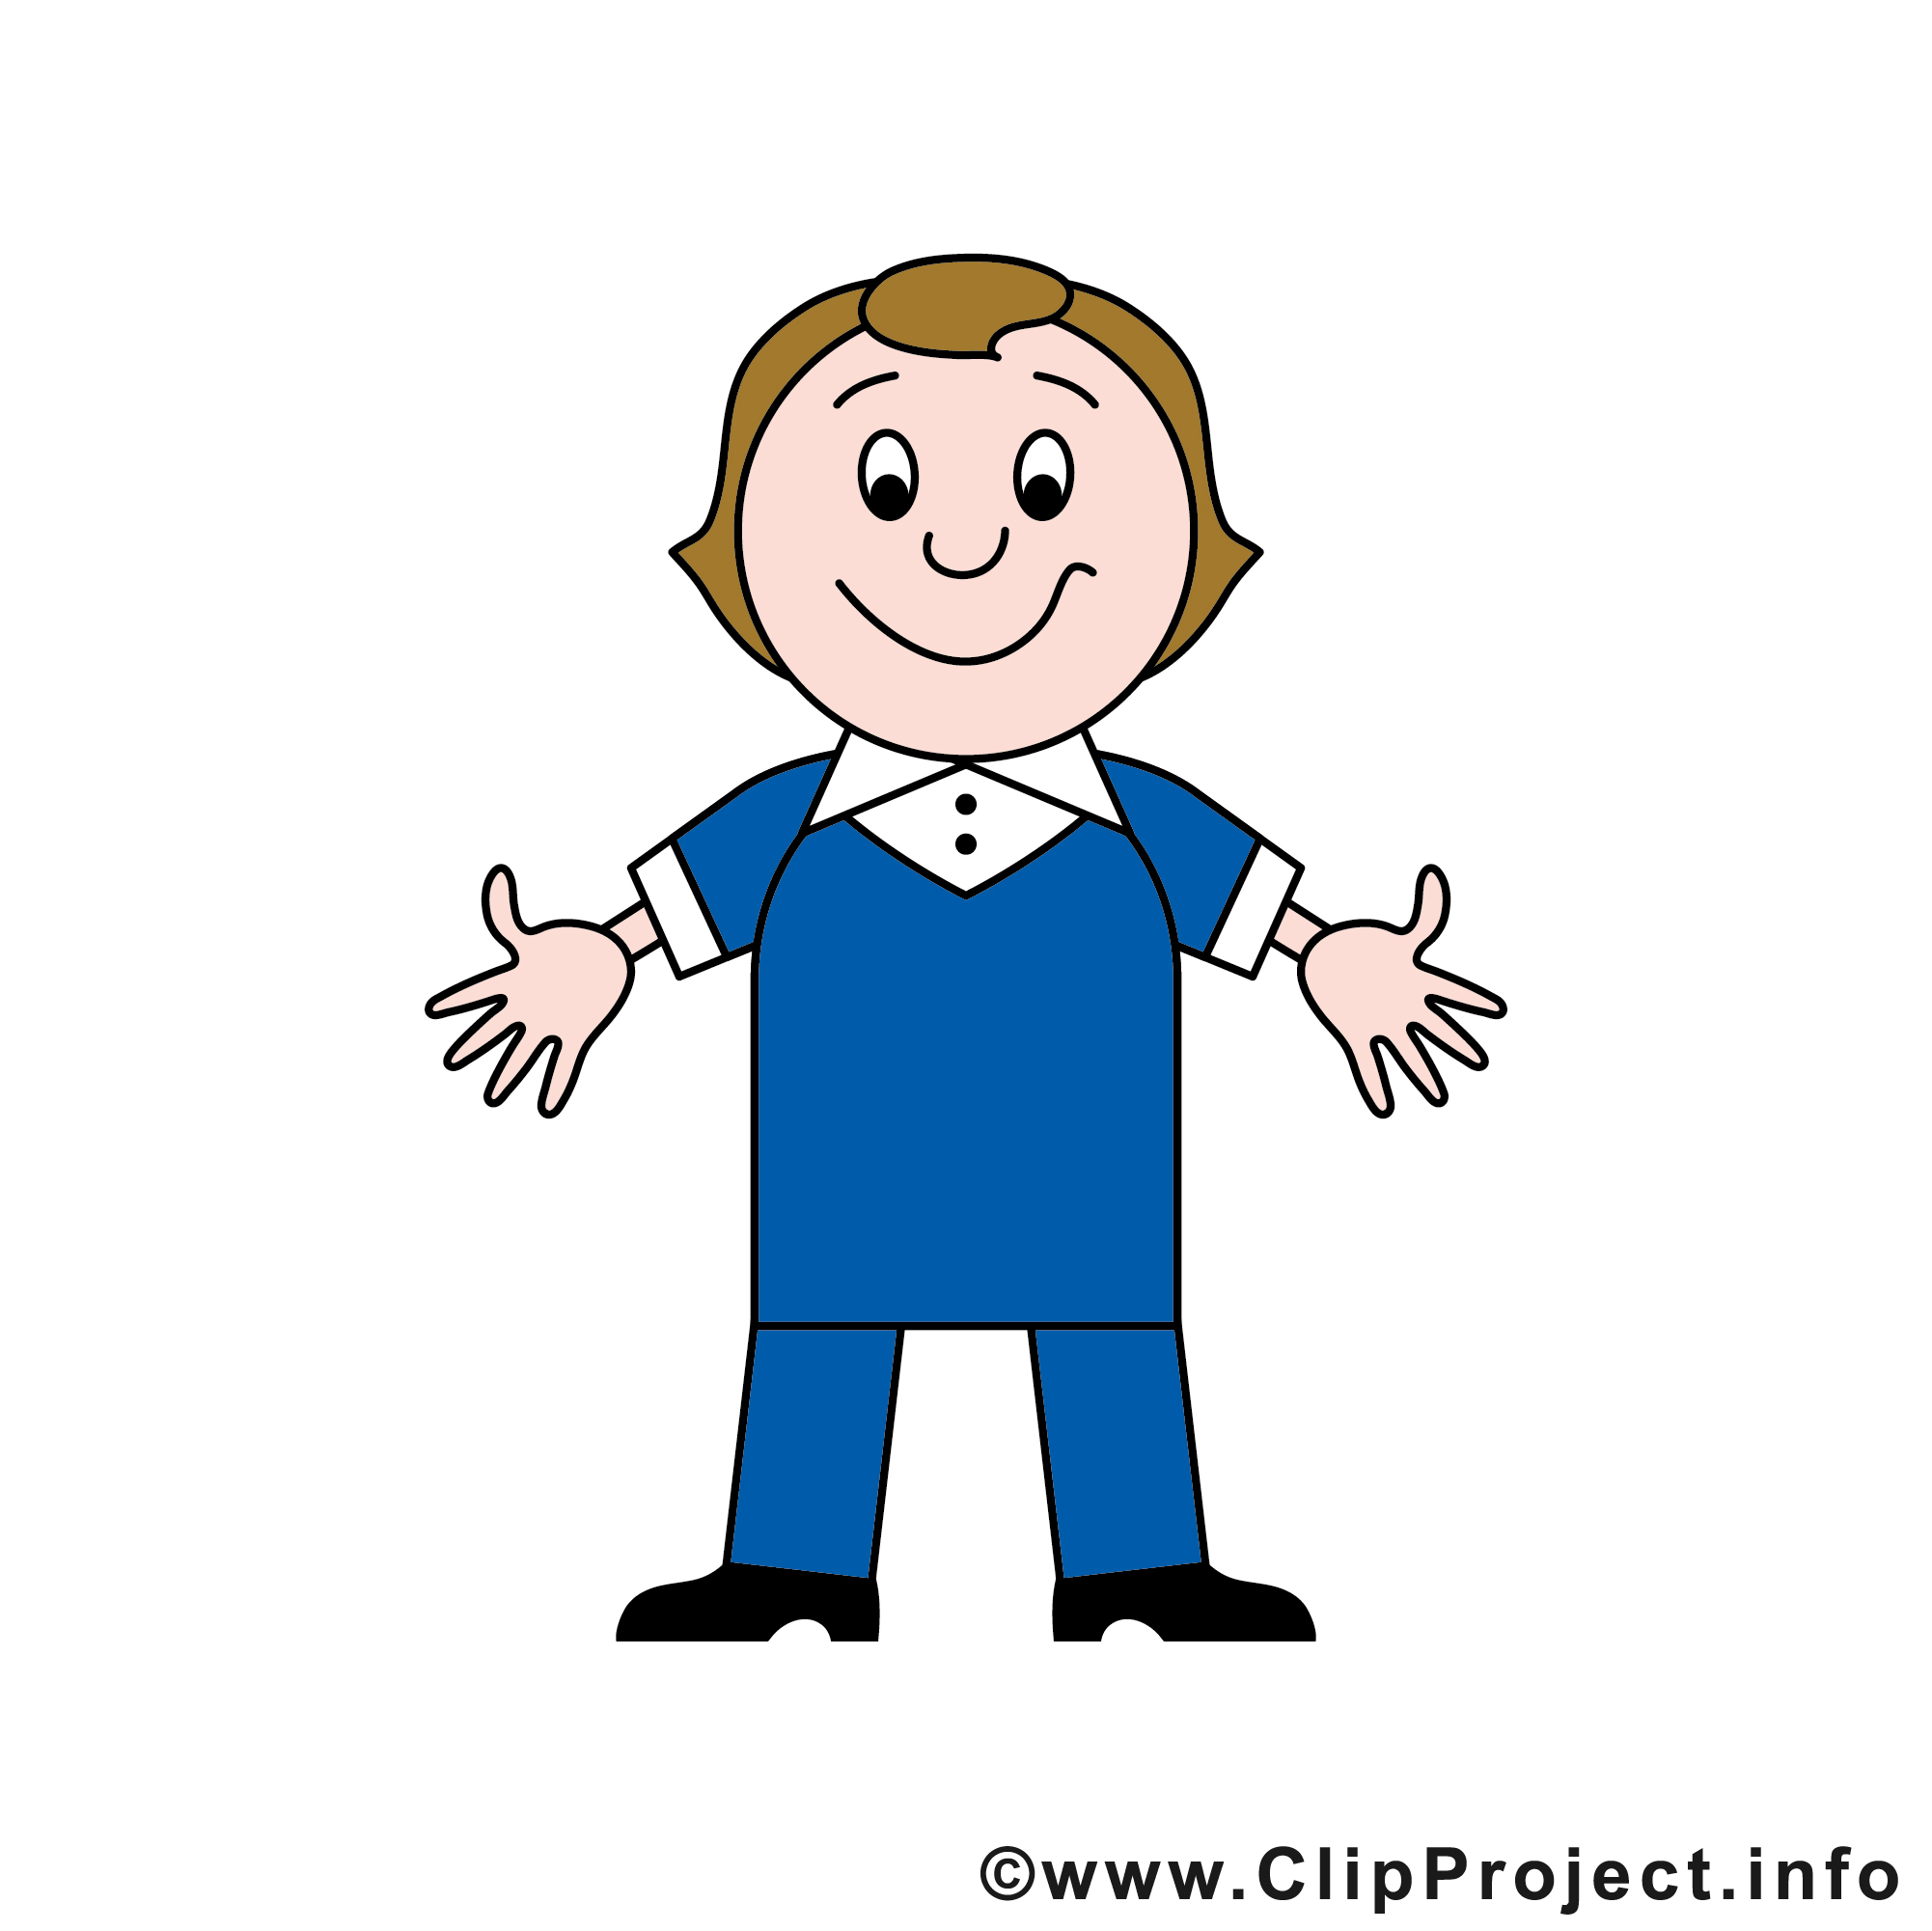 Clipartfest free cliparts people. Bild mann clipart